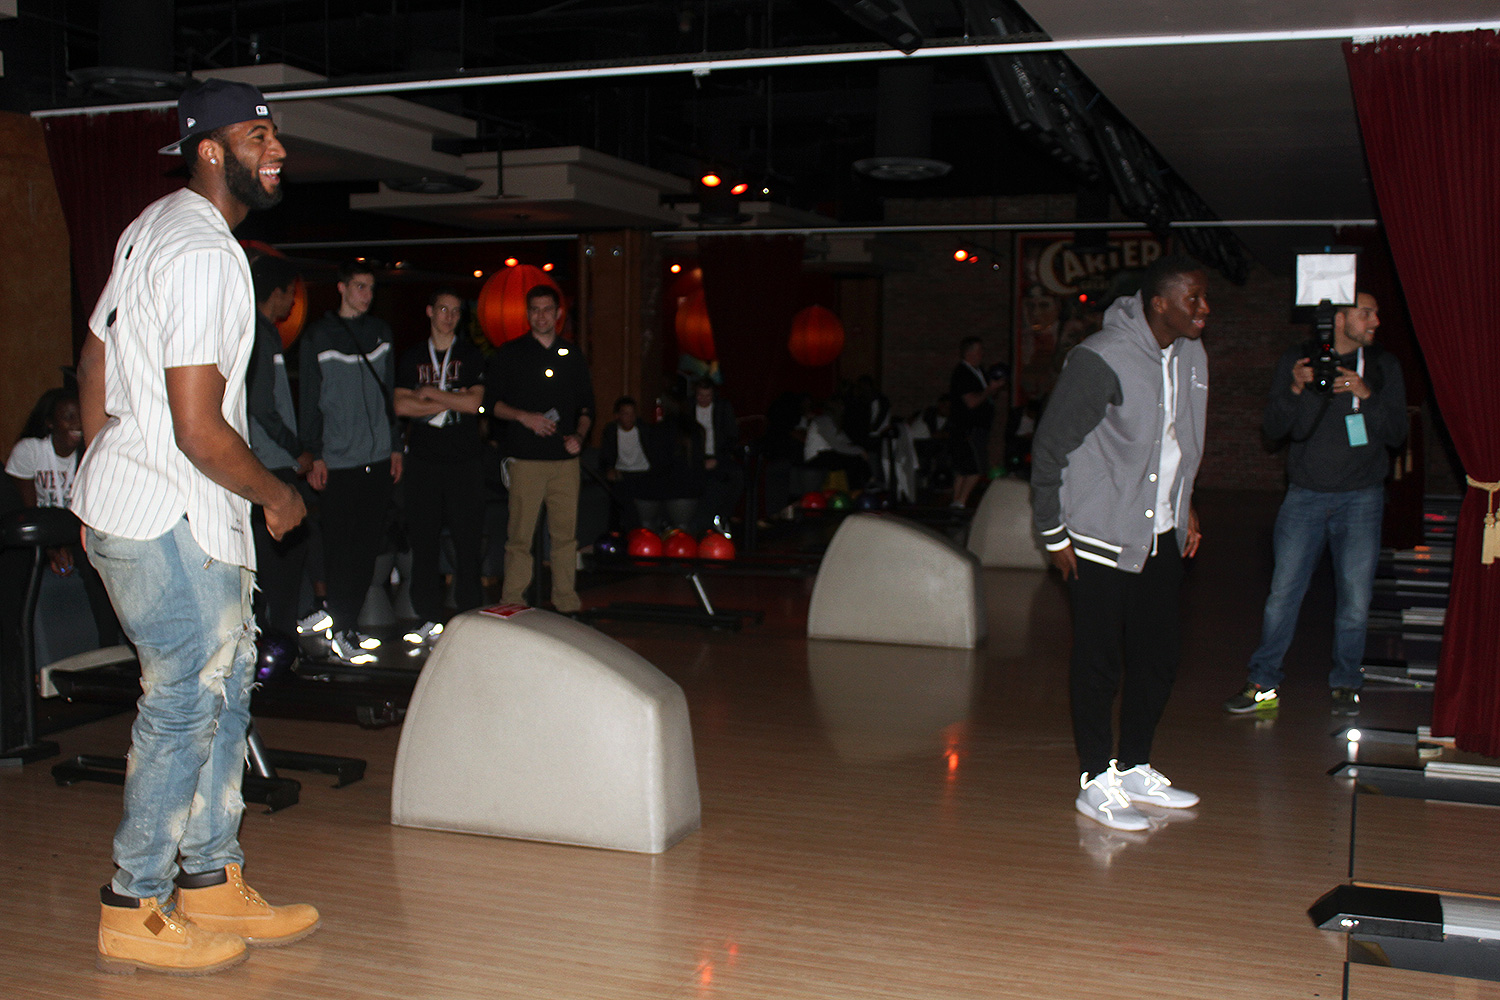 """Victor Oladipo was the star of the of the night taking over the brand's Snapchat, singing a verse of Musiq Soulchild's """"So beautiful,"""" and getting into a competitive bowling match against Andre Drummond."""